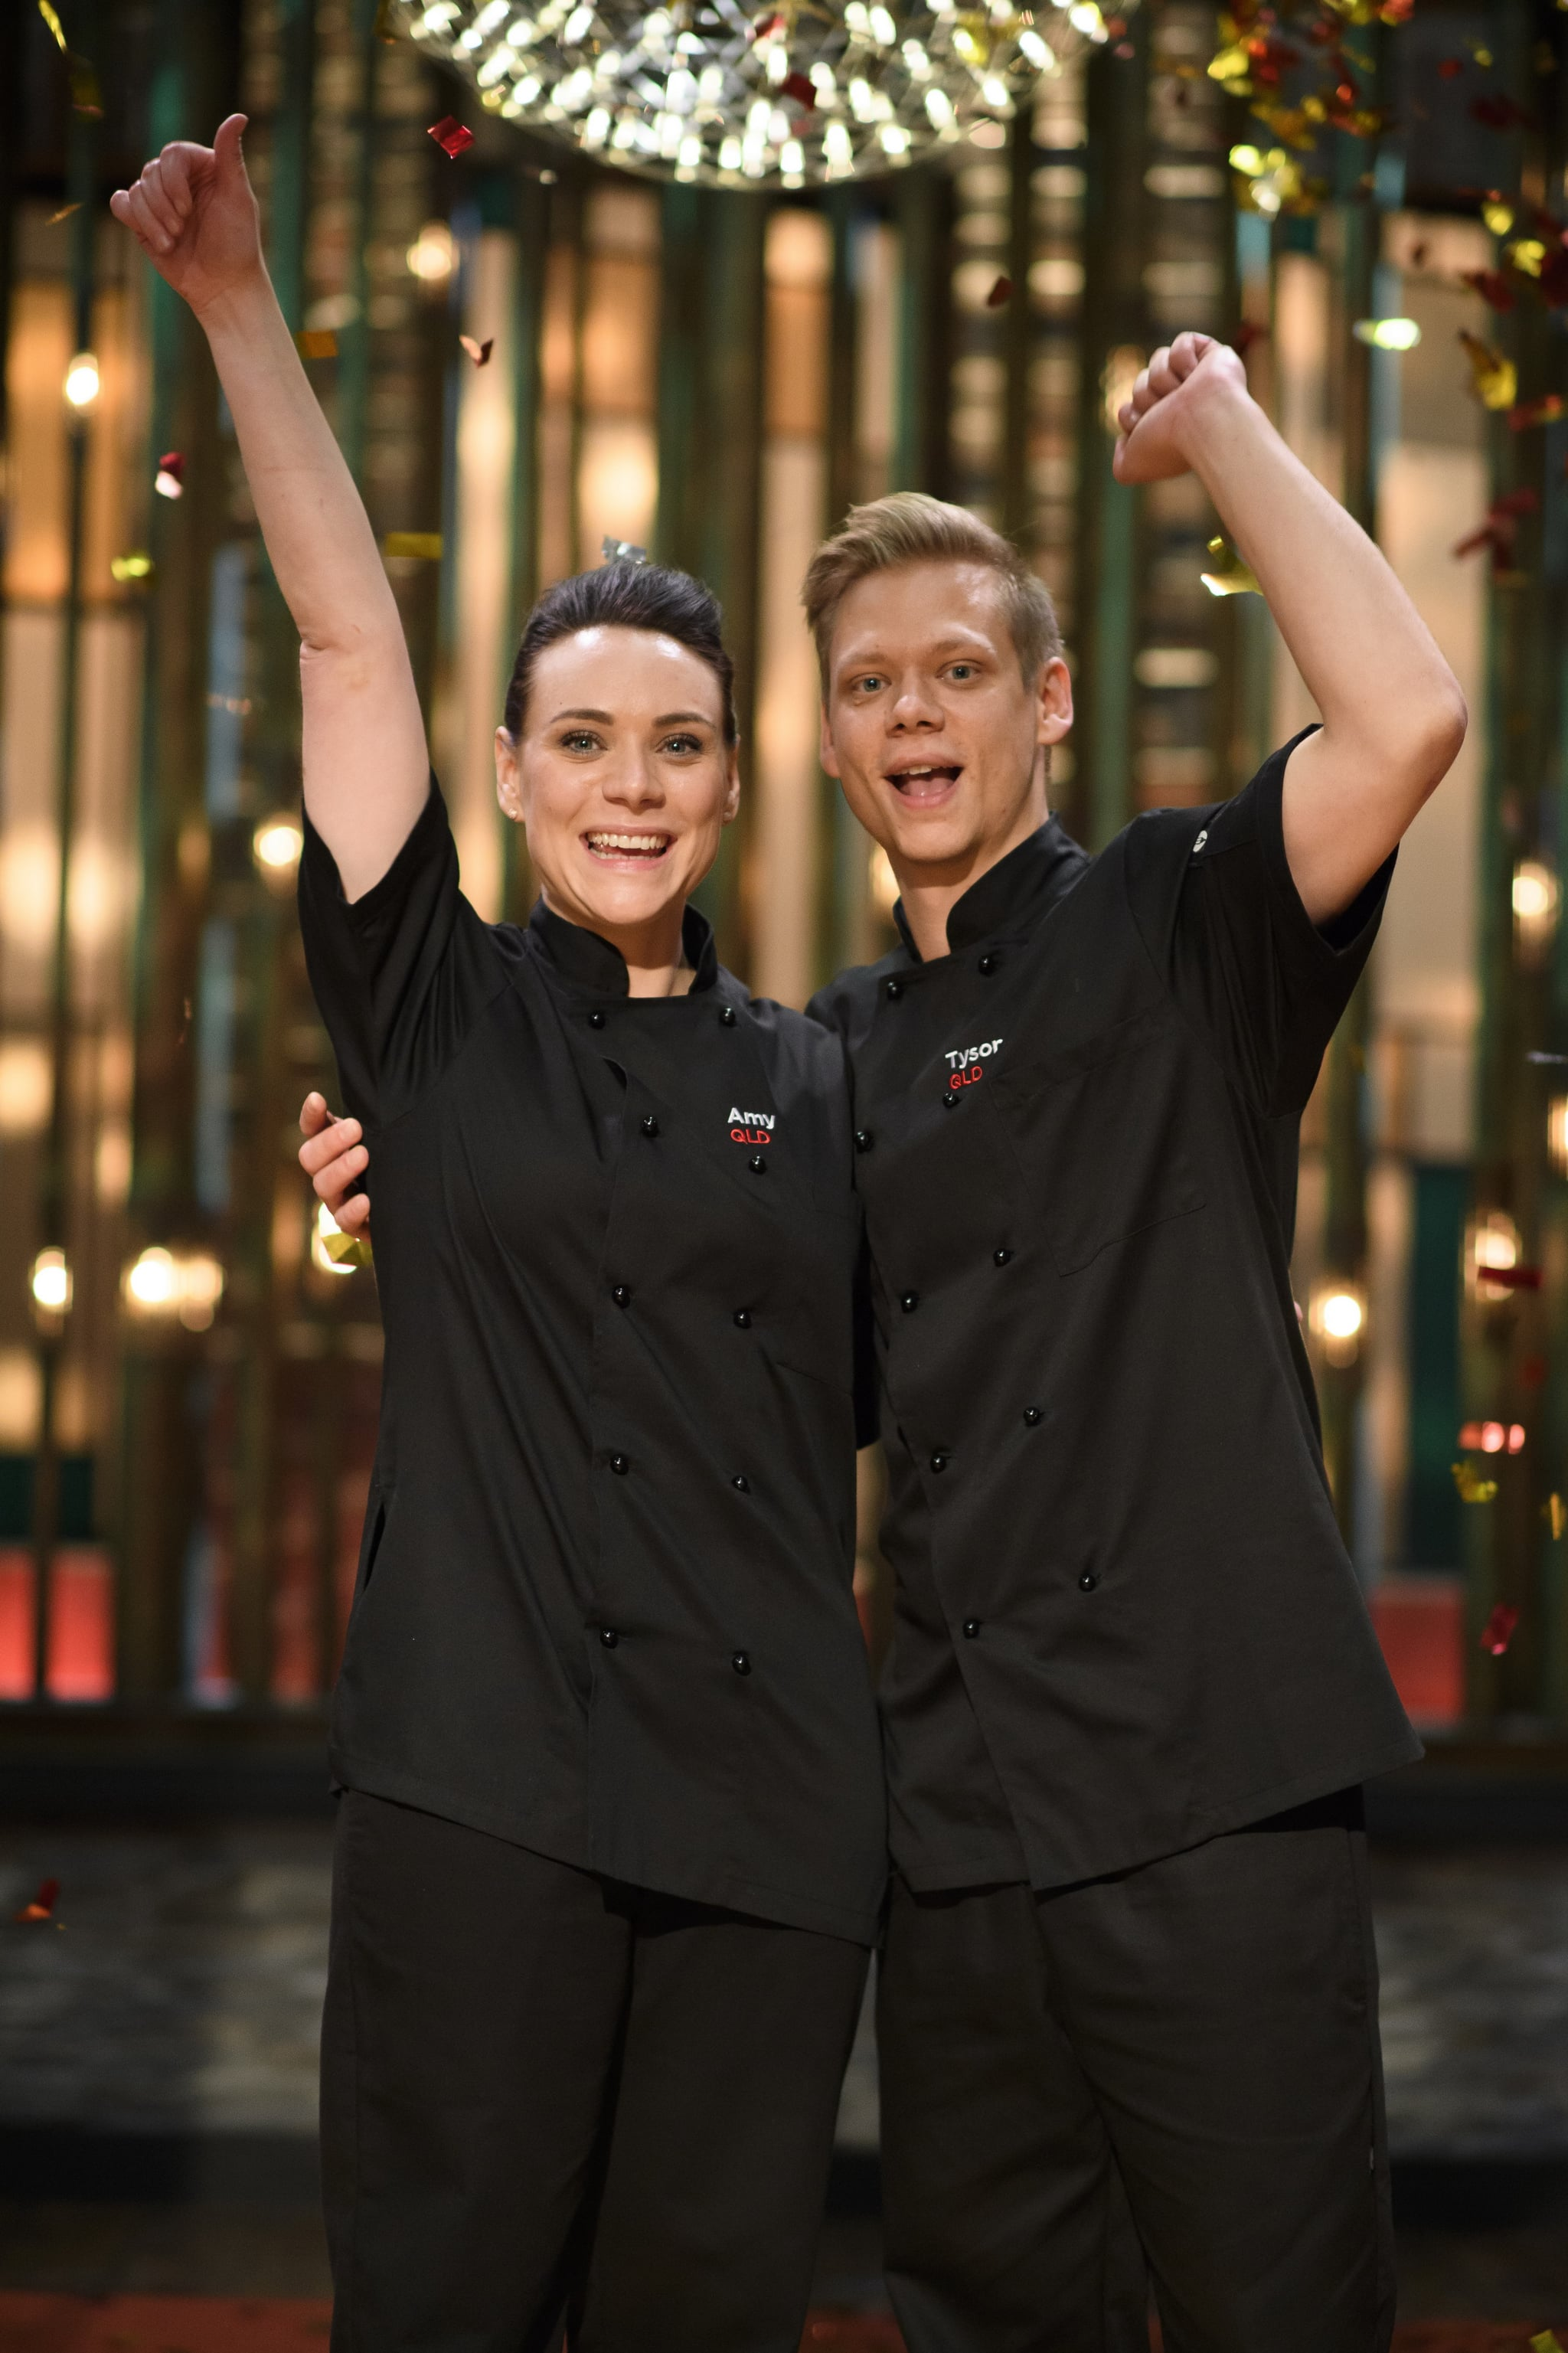 My kitchen rules 2017 winners amy and tyson popsugar for Y kitchen rules season 6